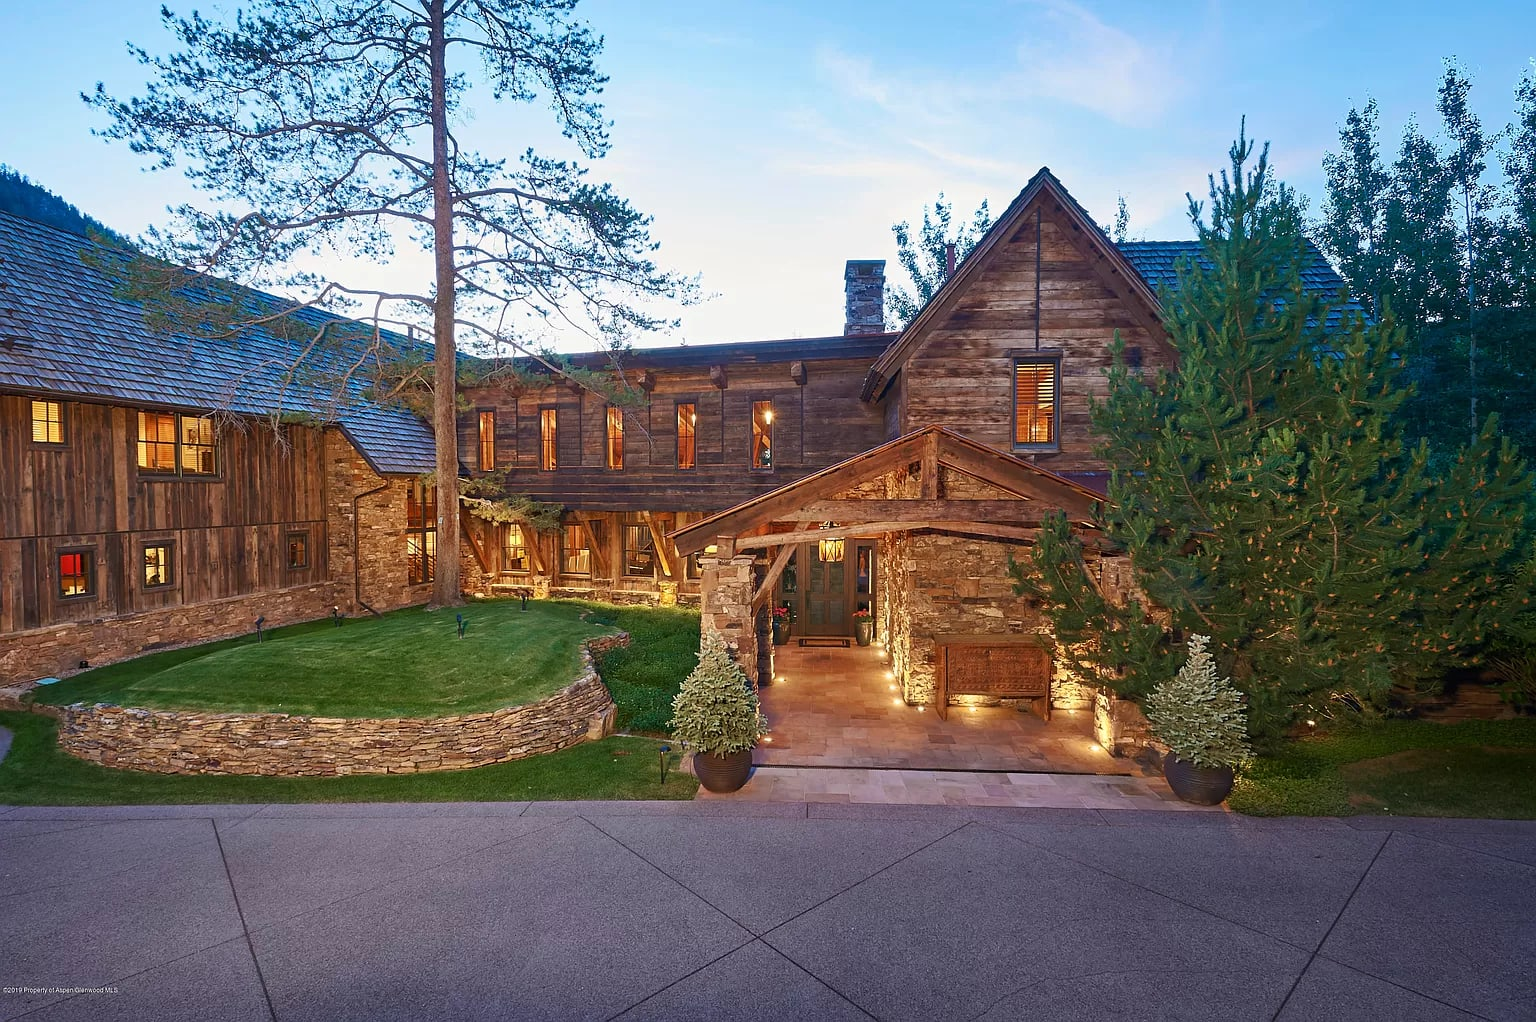 Most Popular Architectural Styles in Aspen